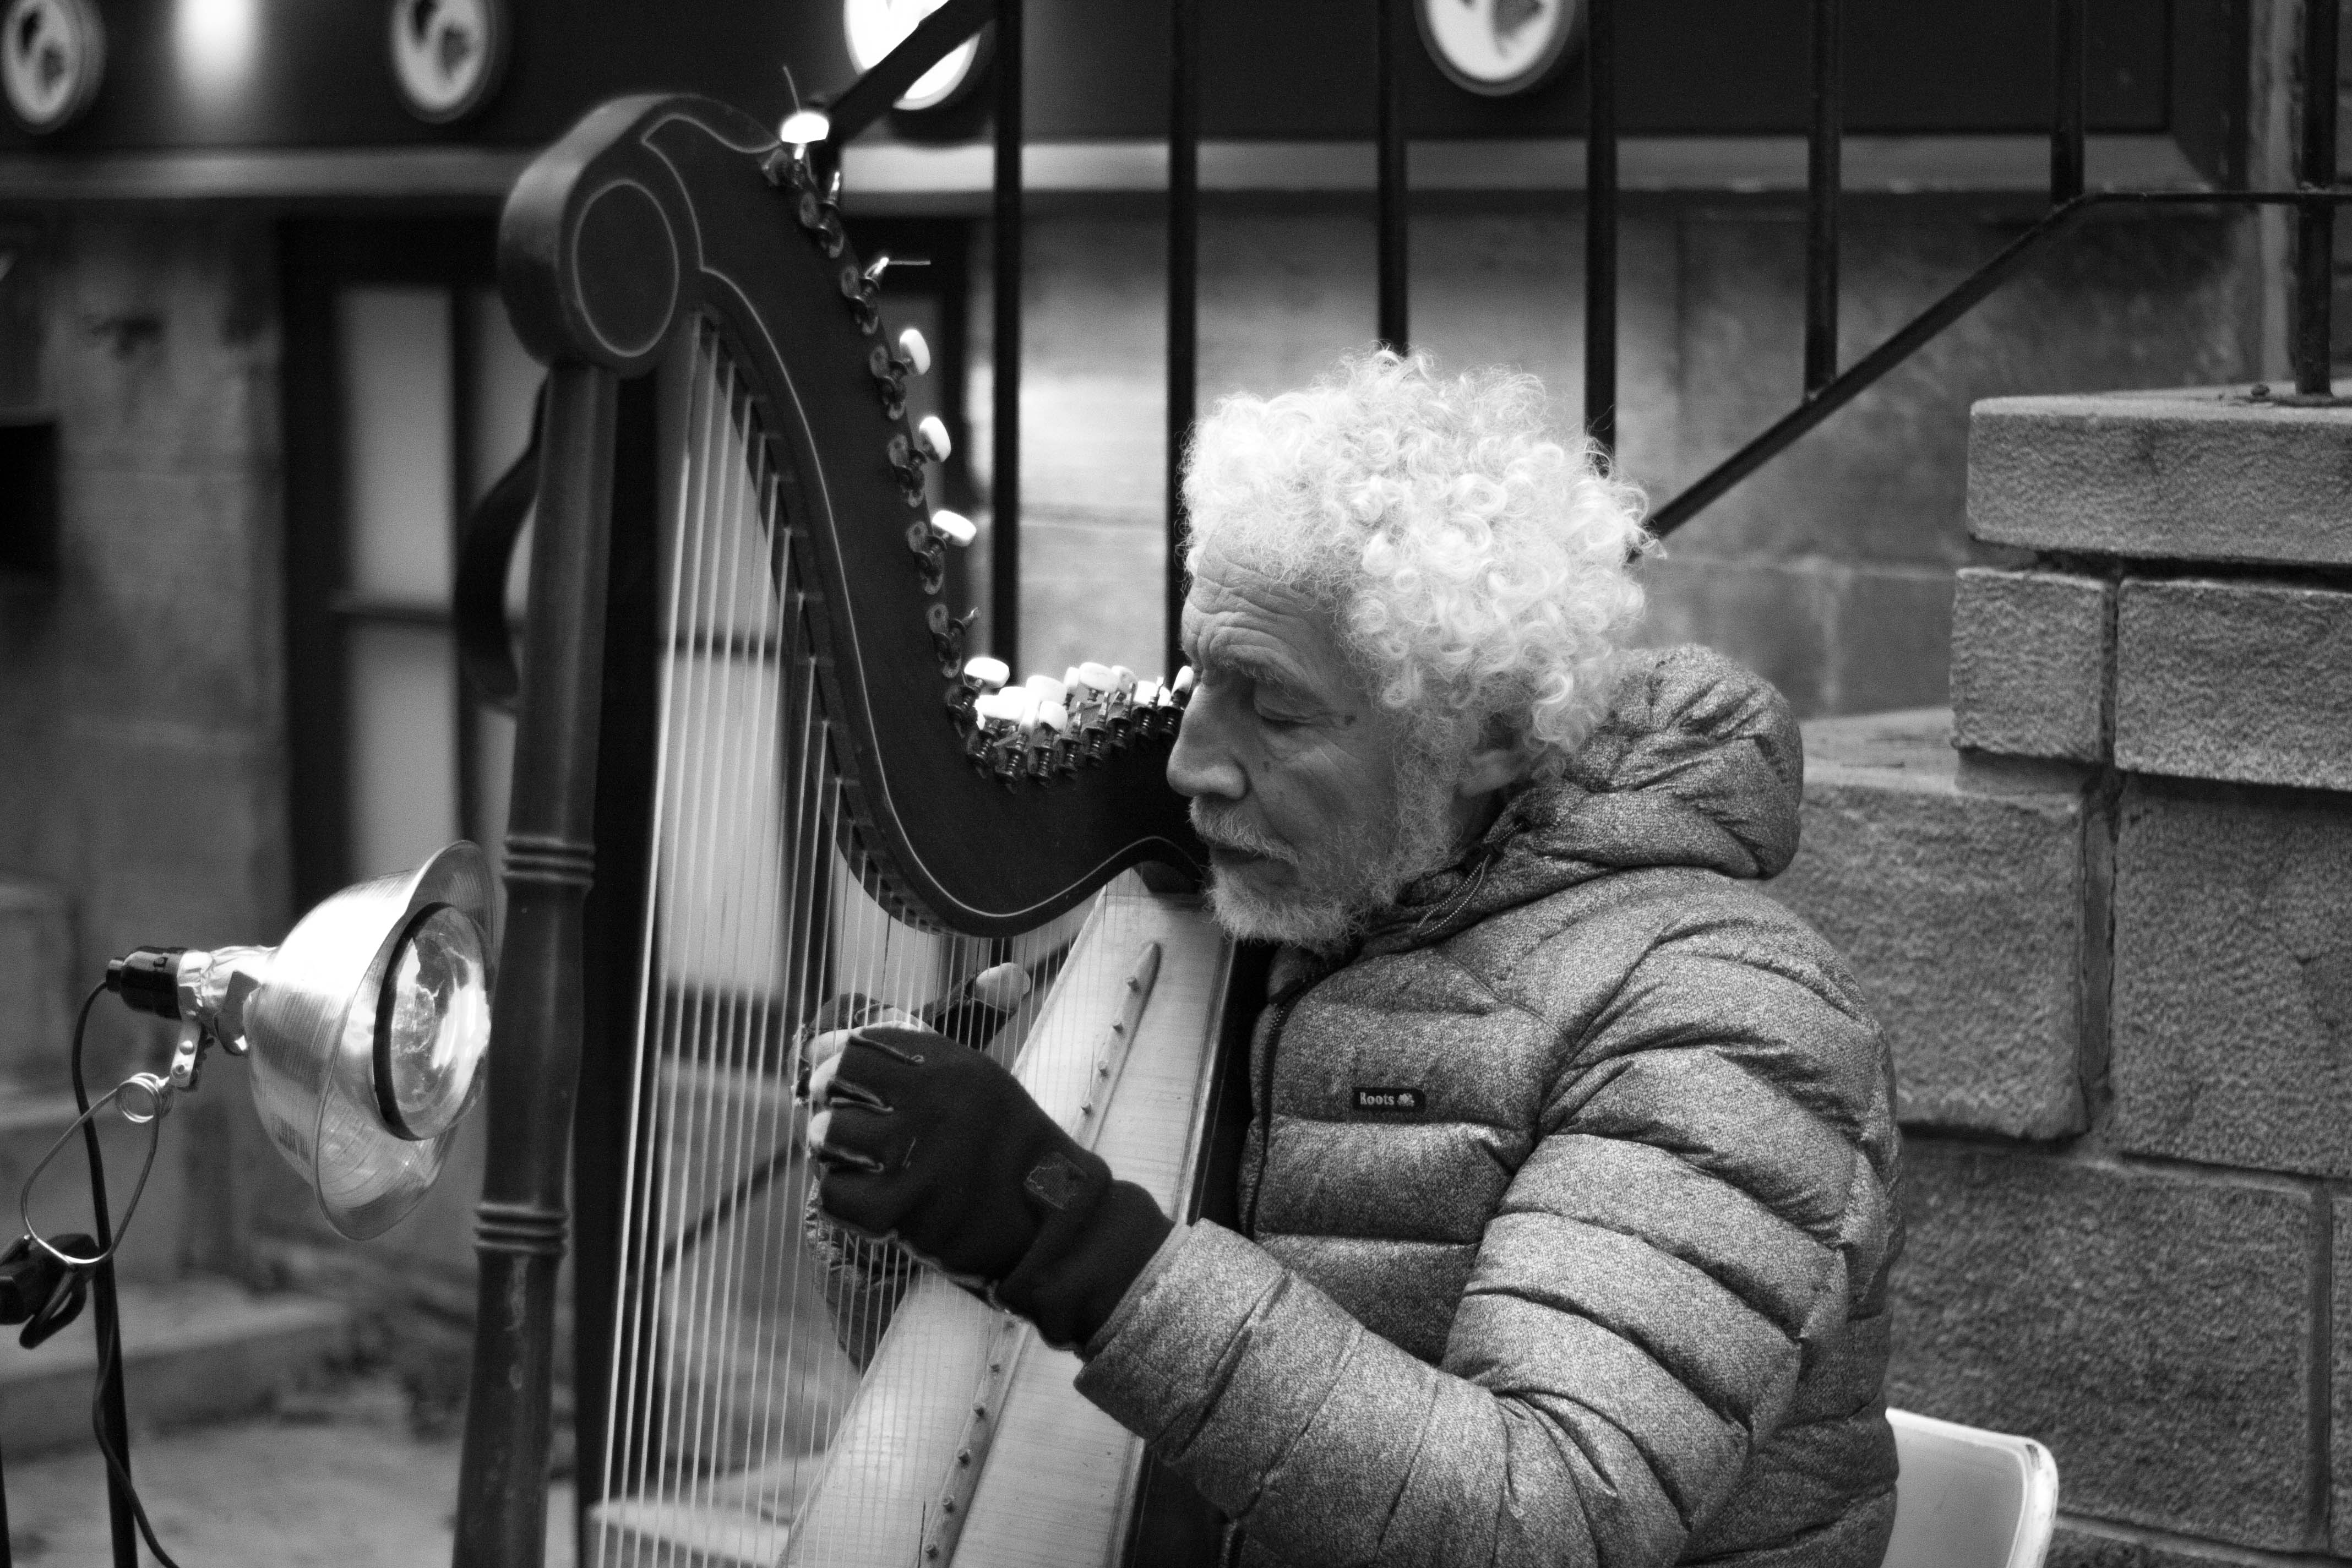 grayscale photo of man playing harp near stairs